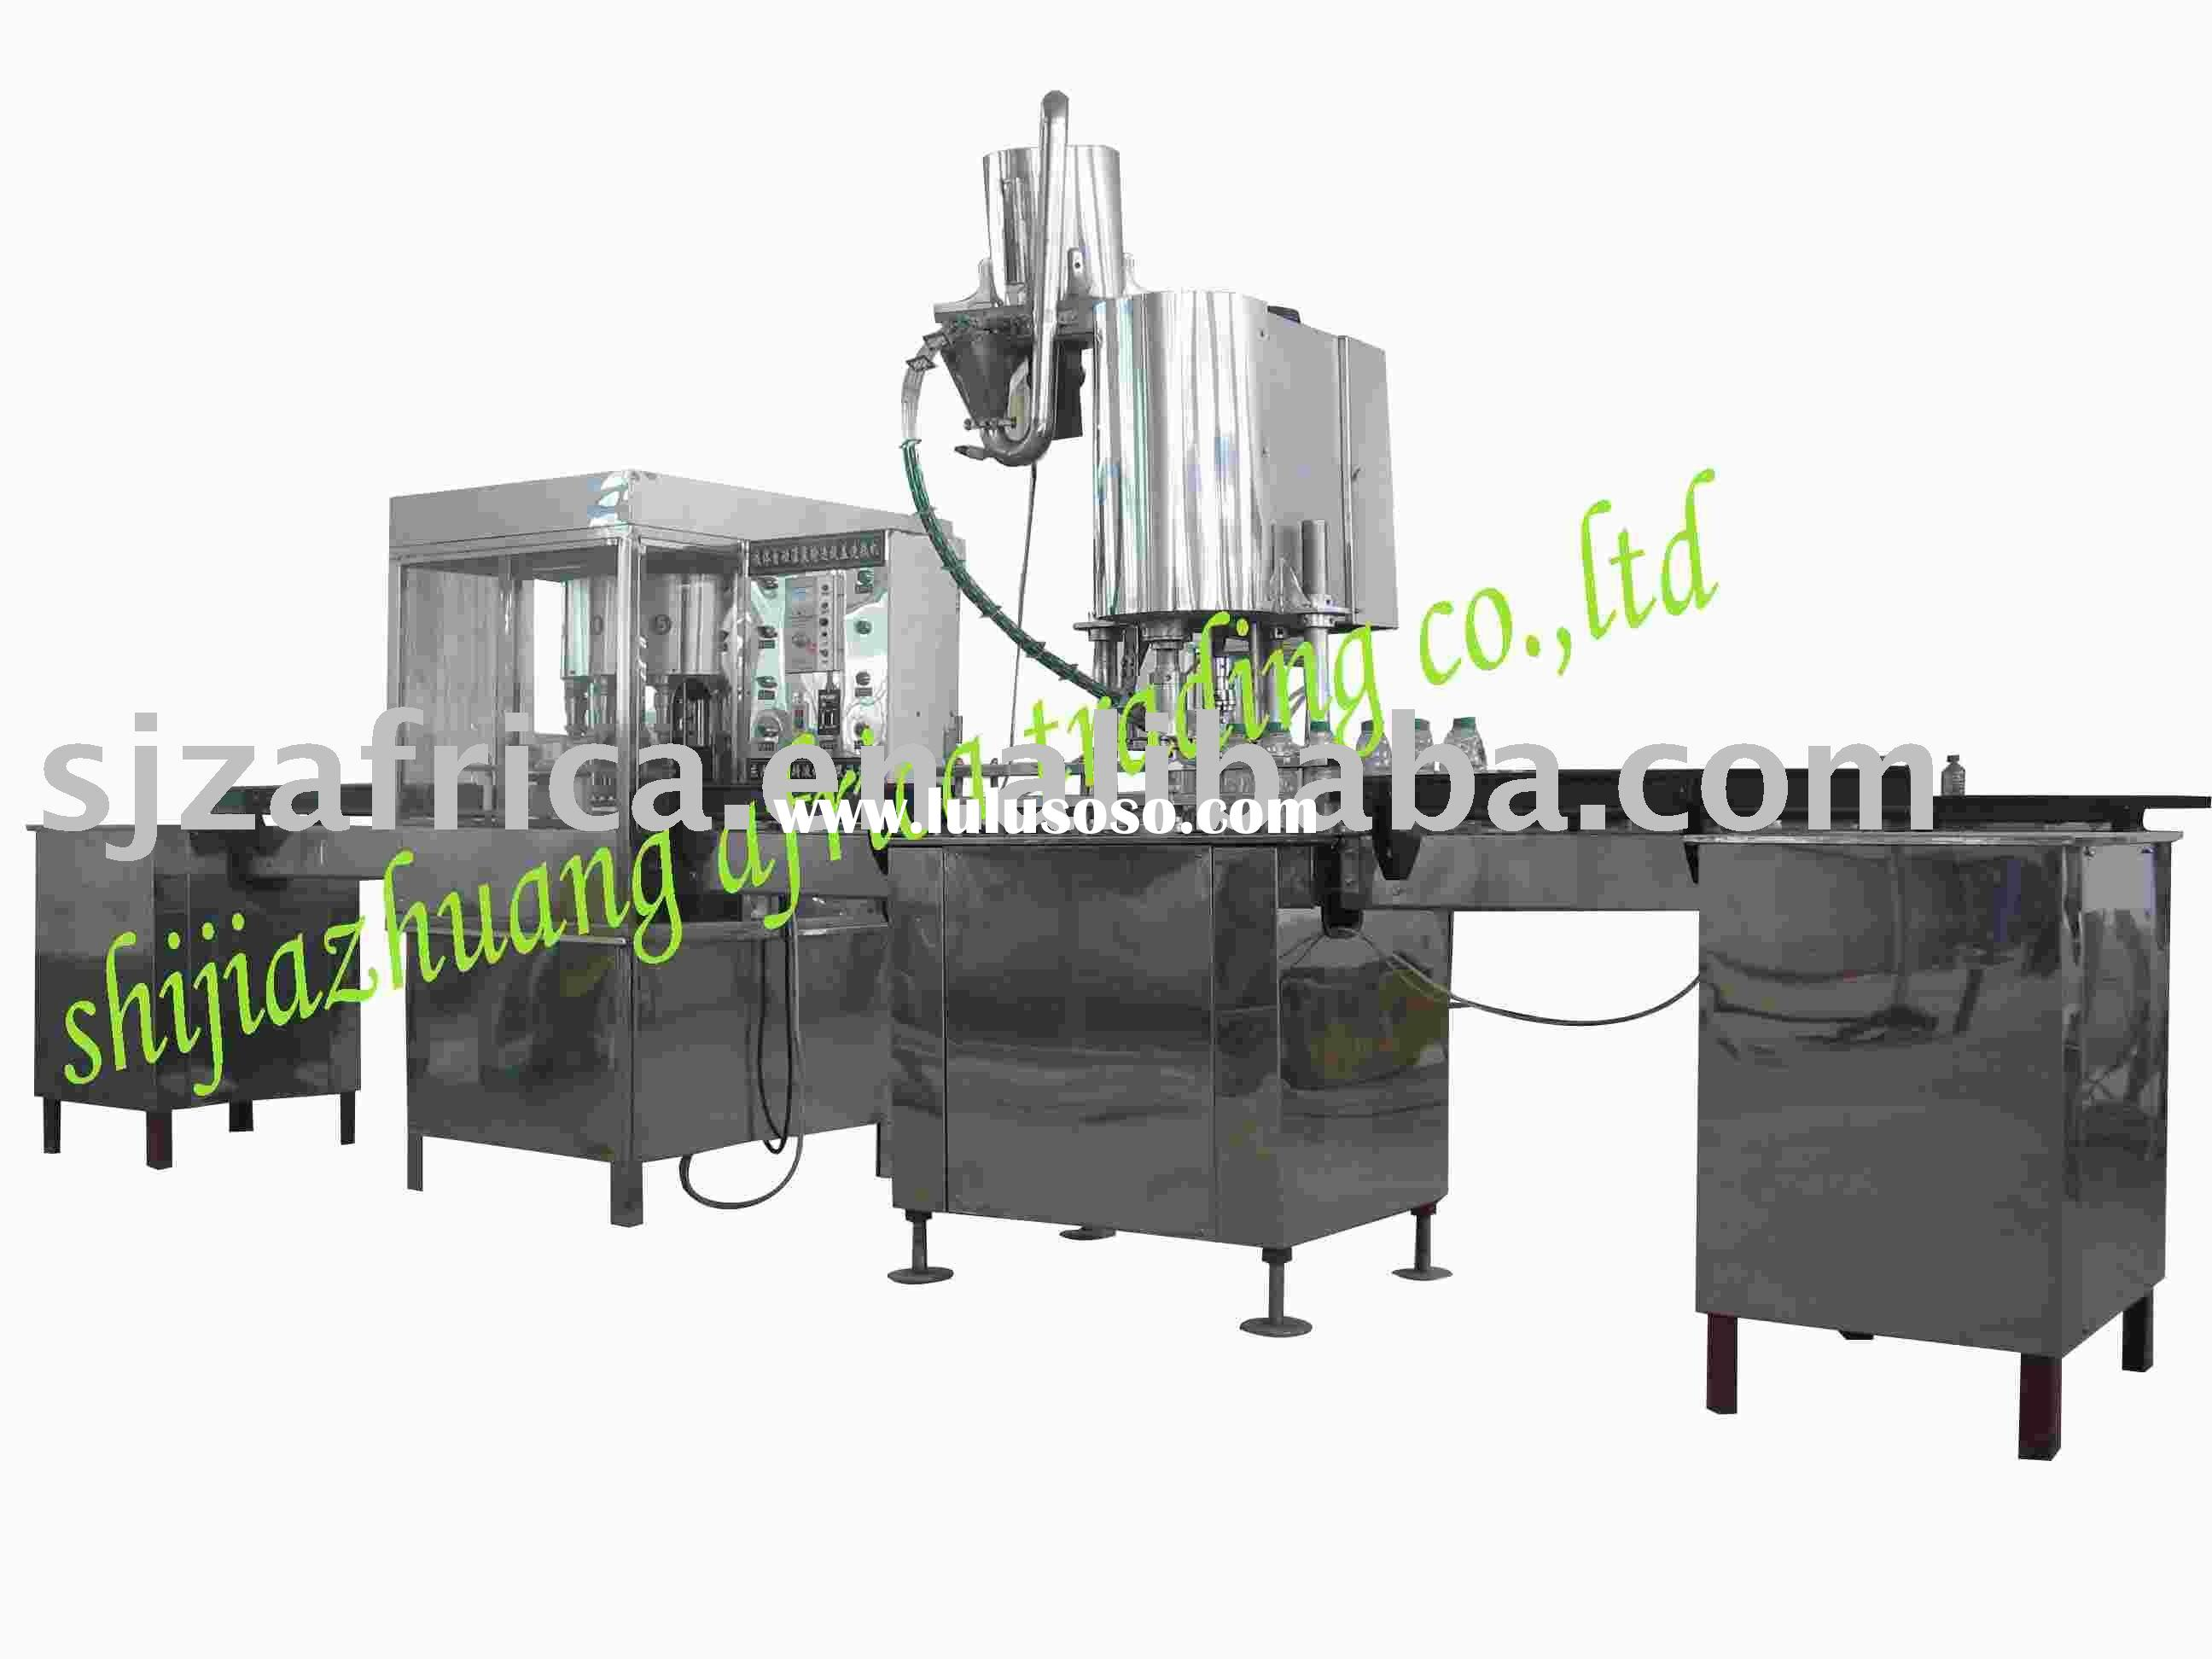 puried water process equipment